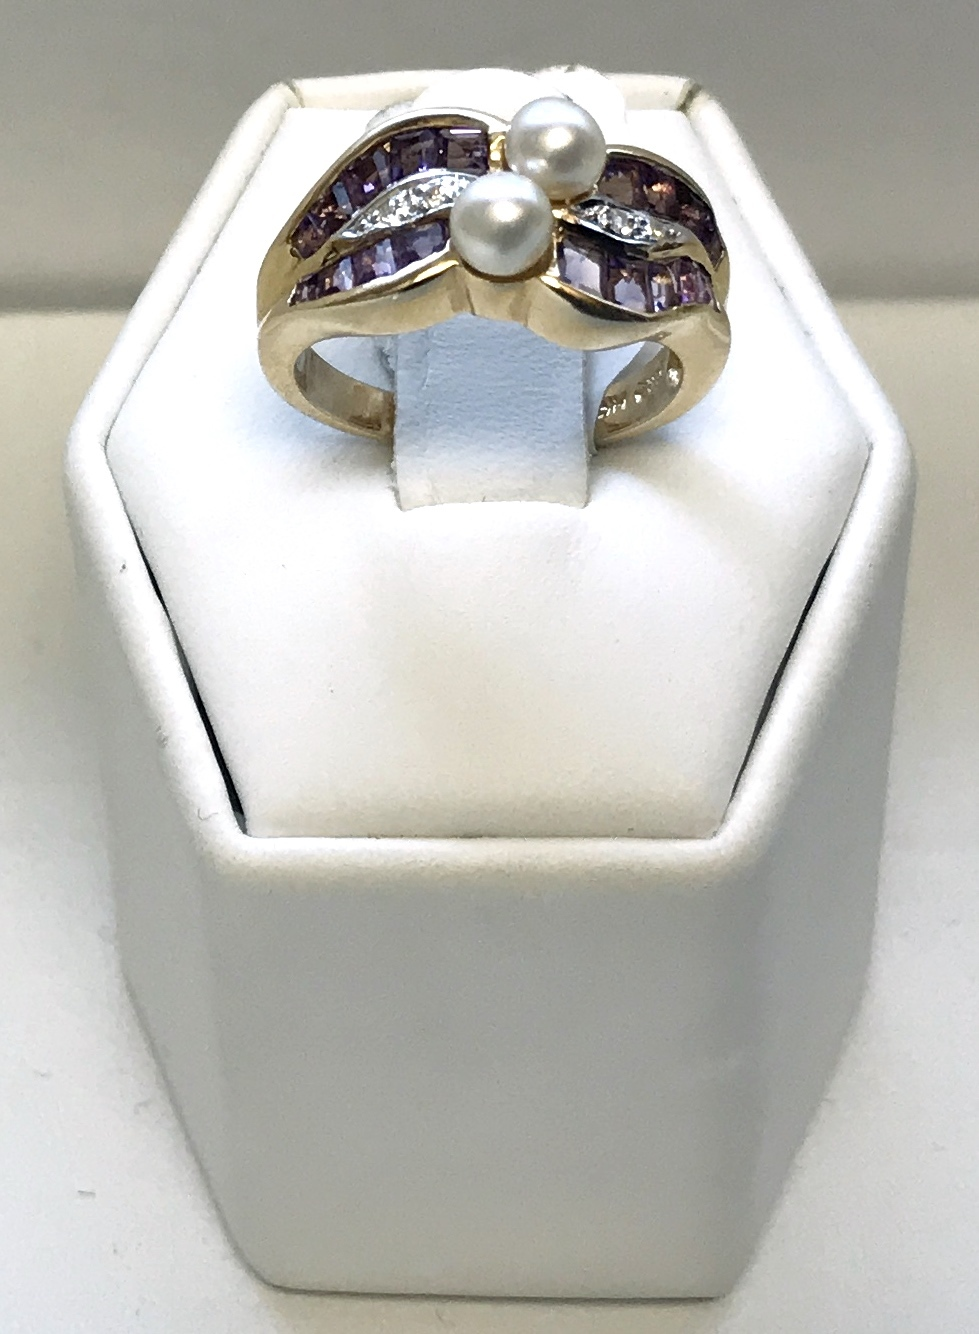 14K Yellow Gold 5g Ring with Diamonds, Purple stones and Pearls